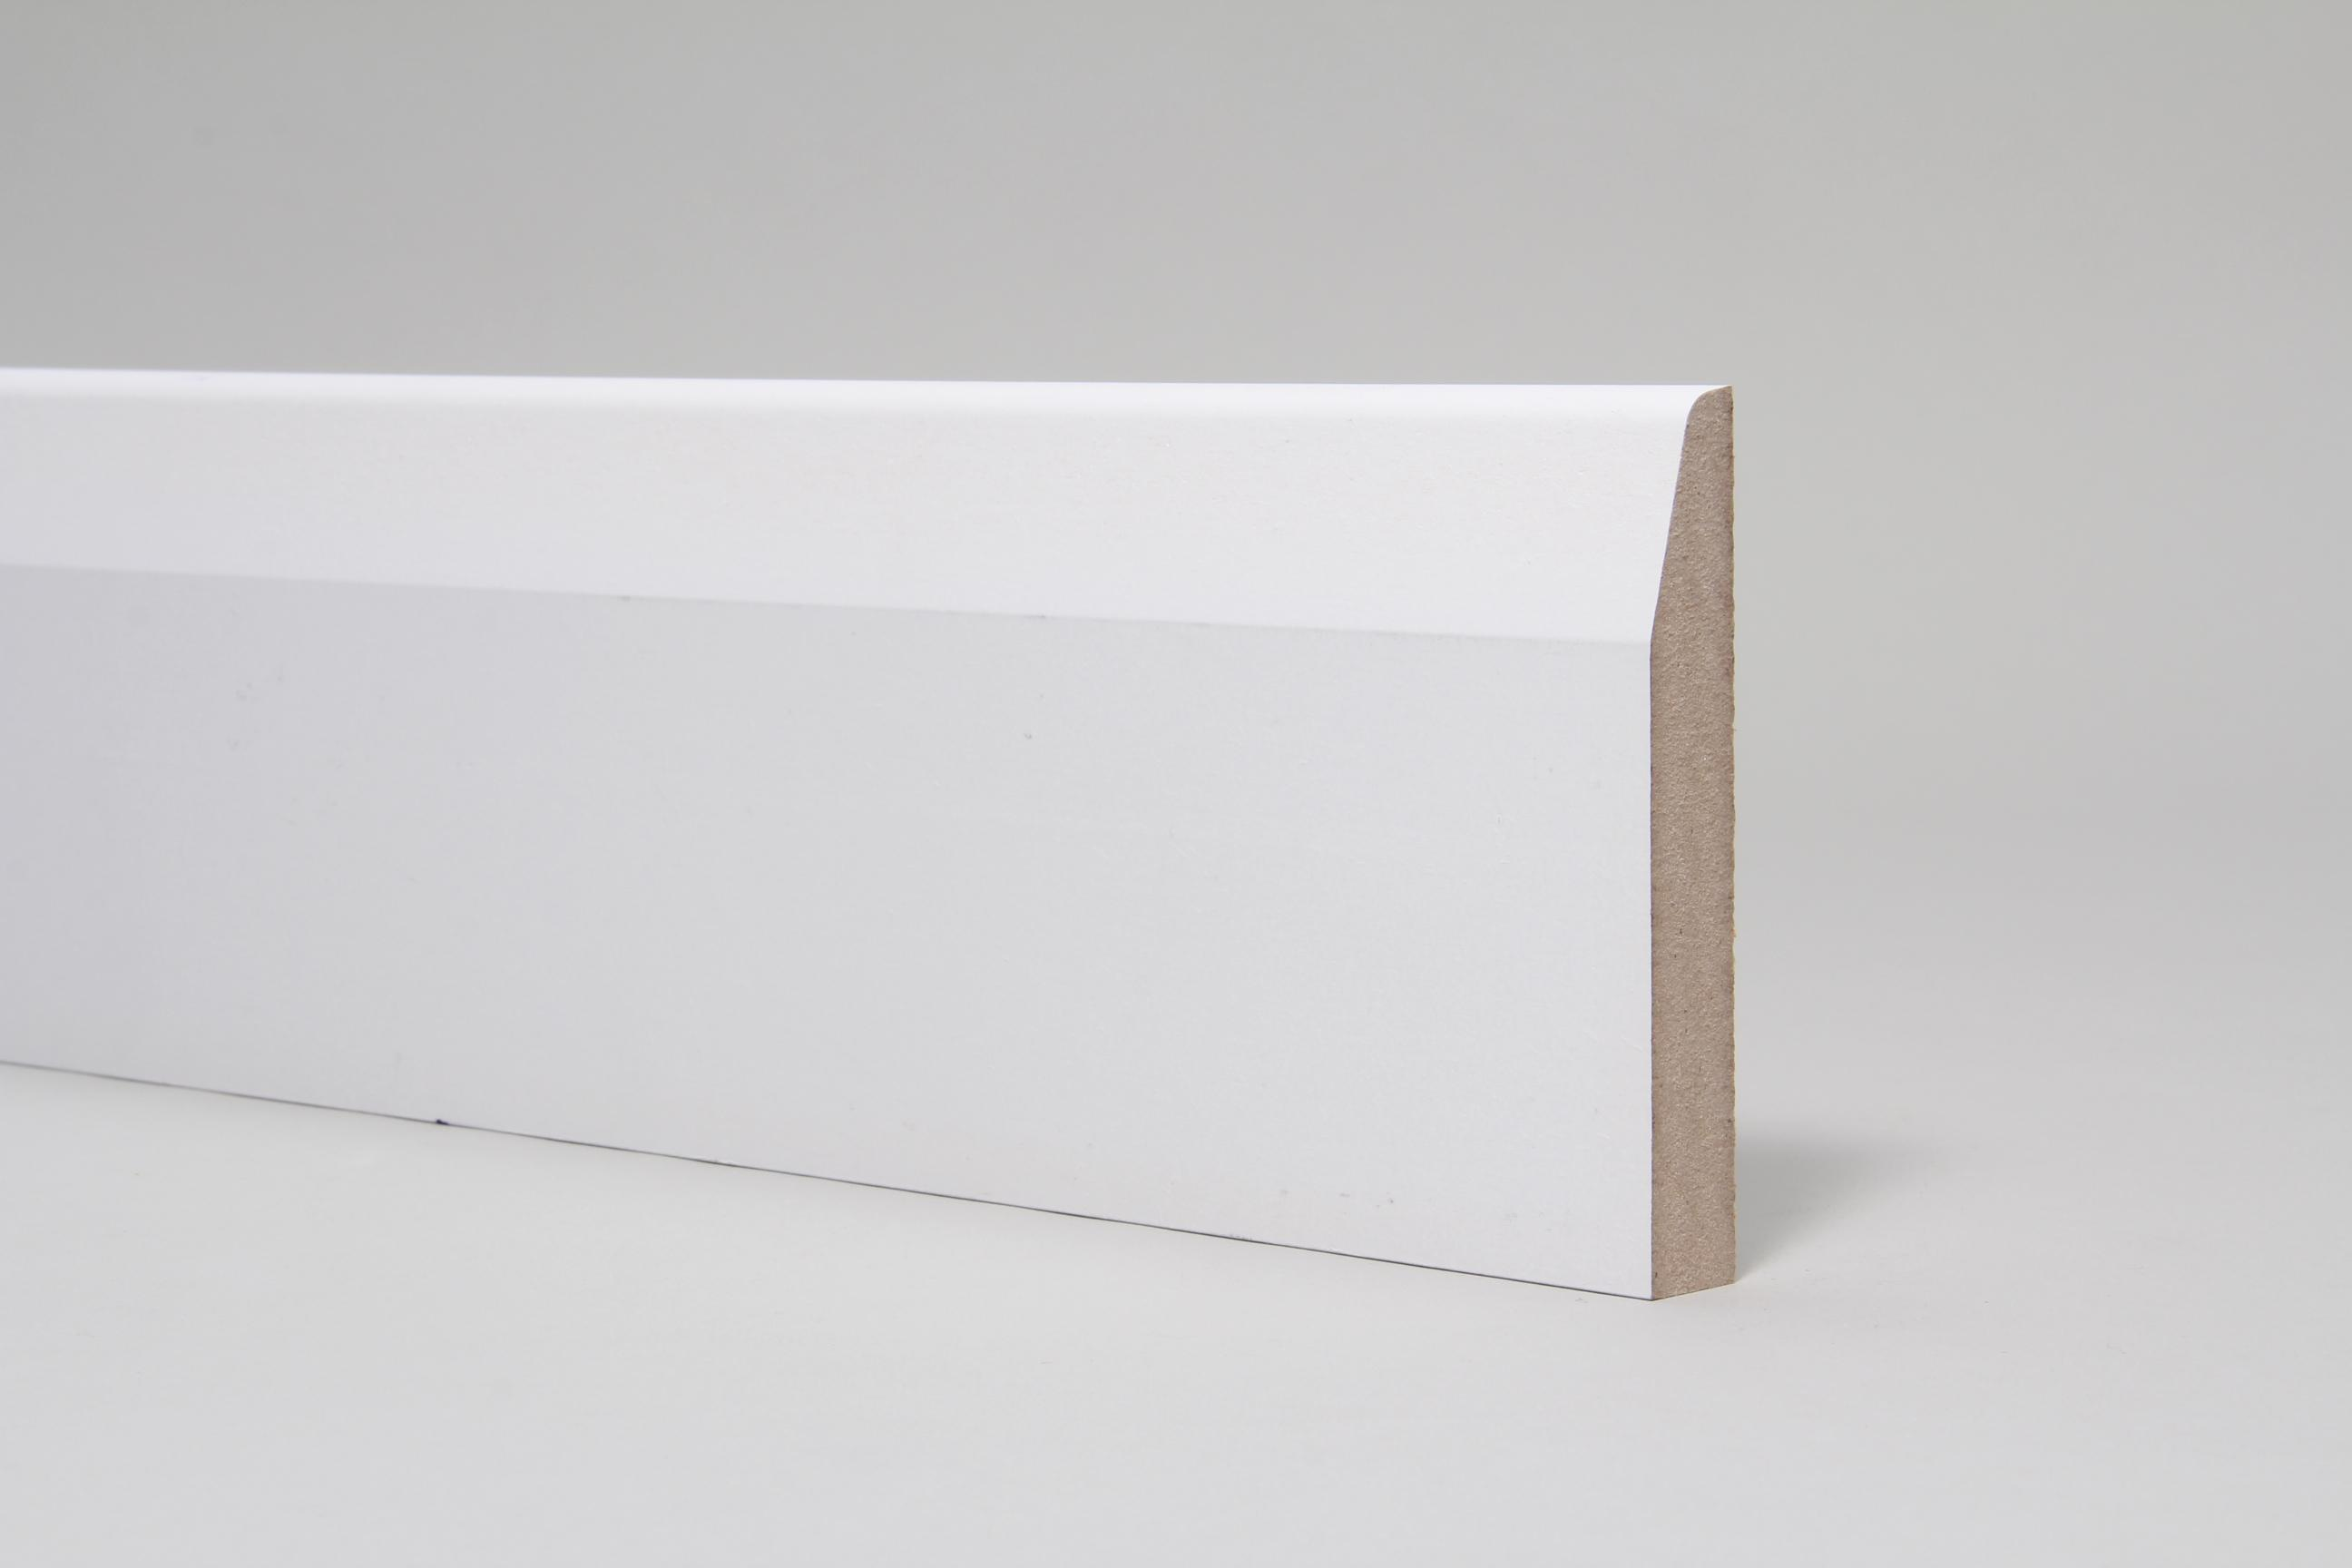 Chamfered & Rounded 18mm x 119mm x 4.4 Mtr Primed